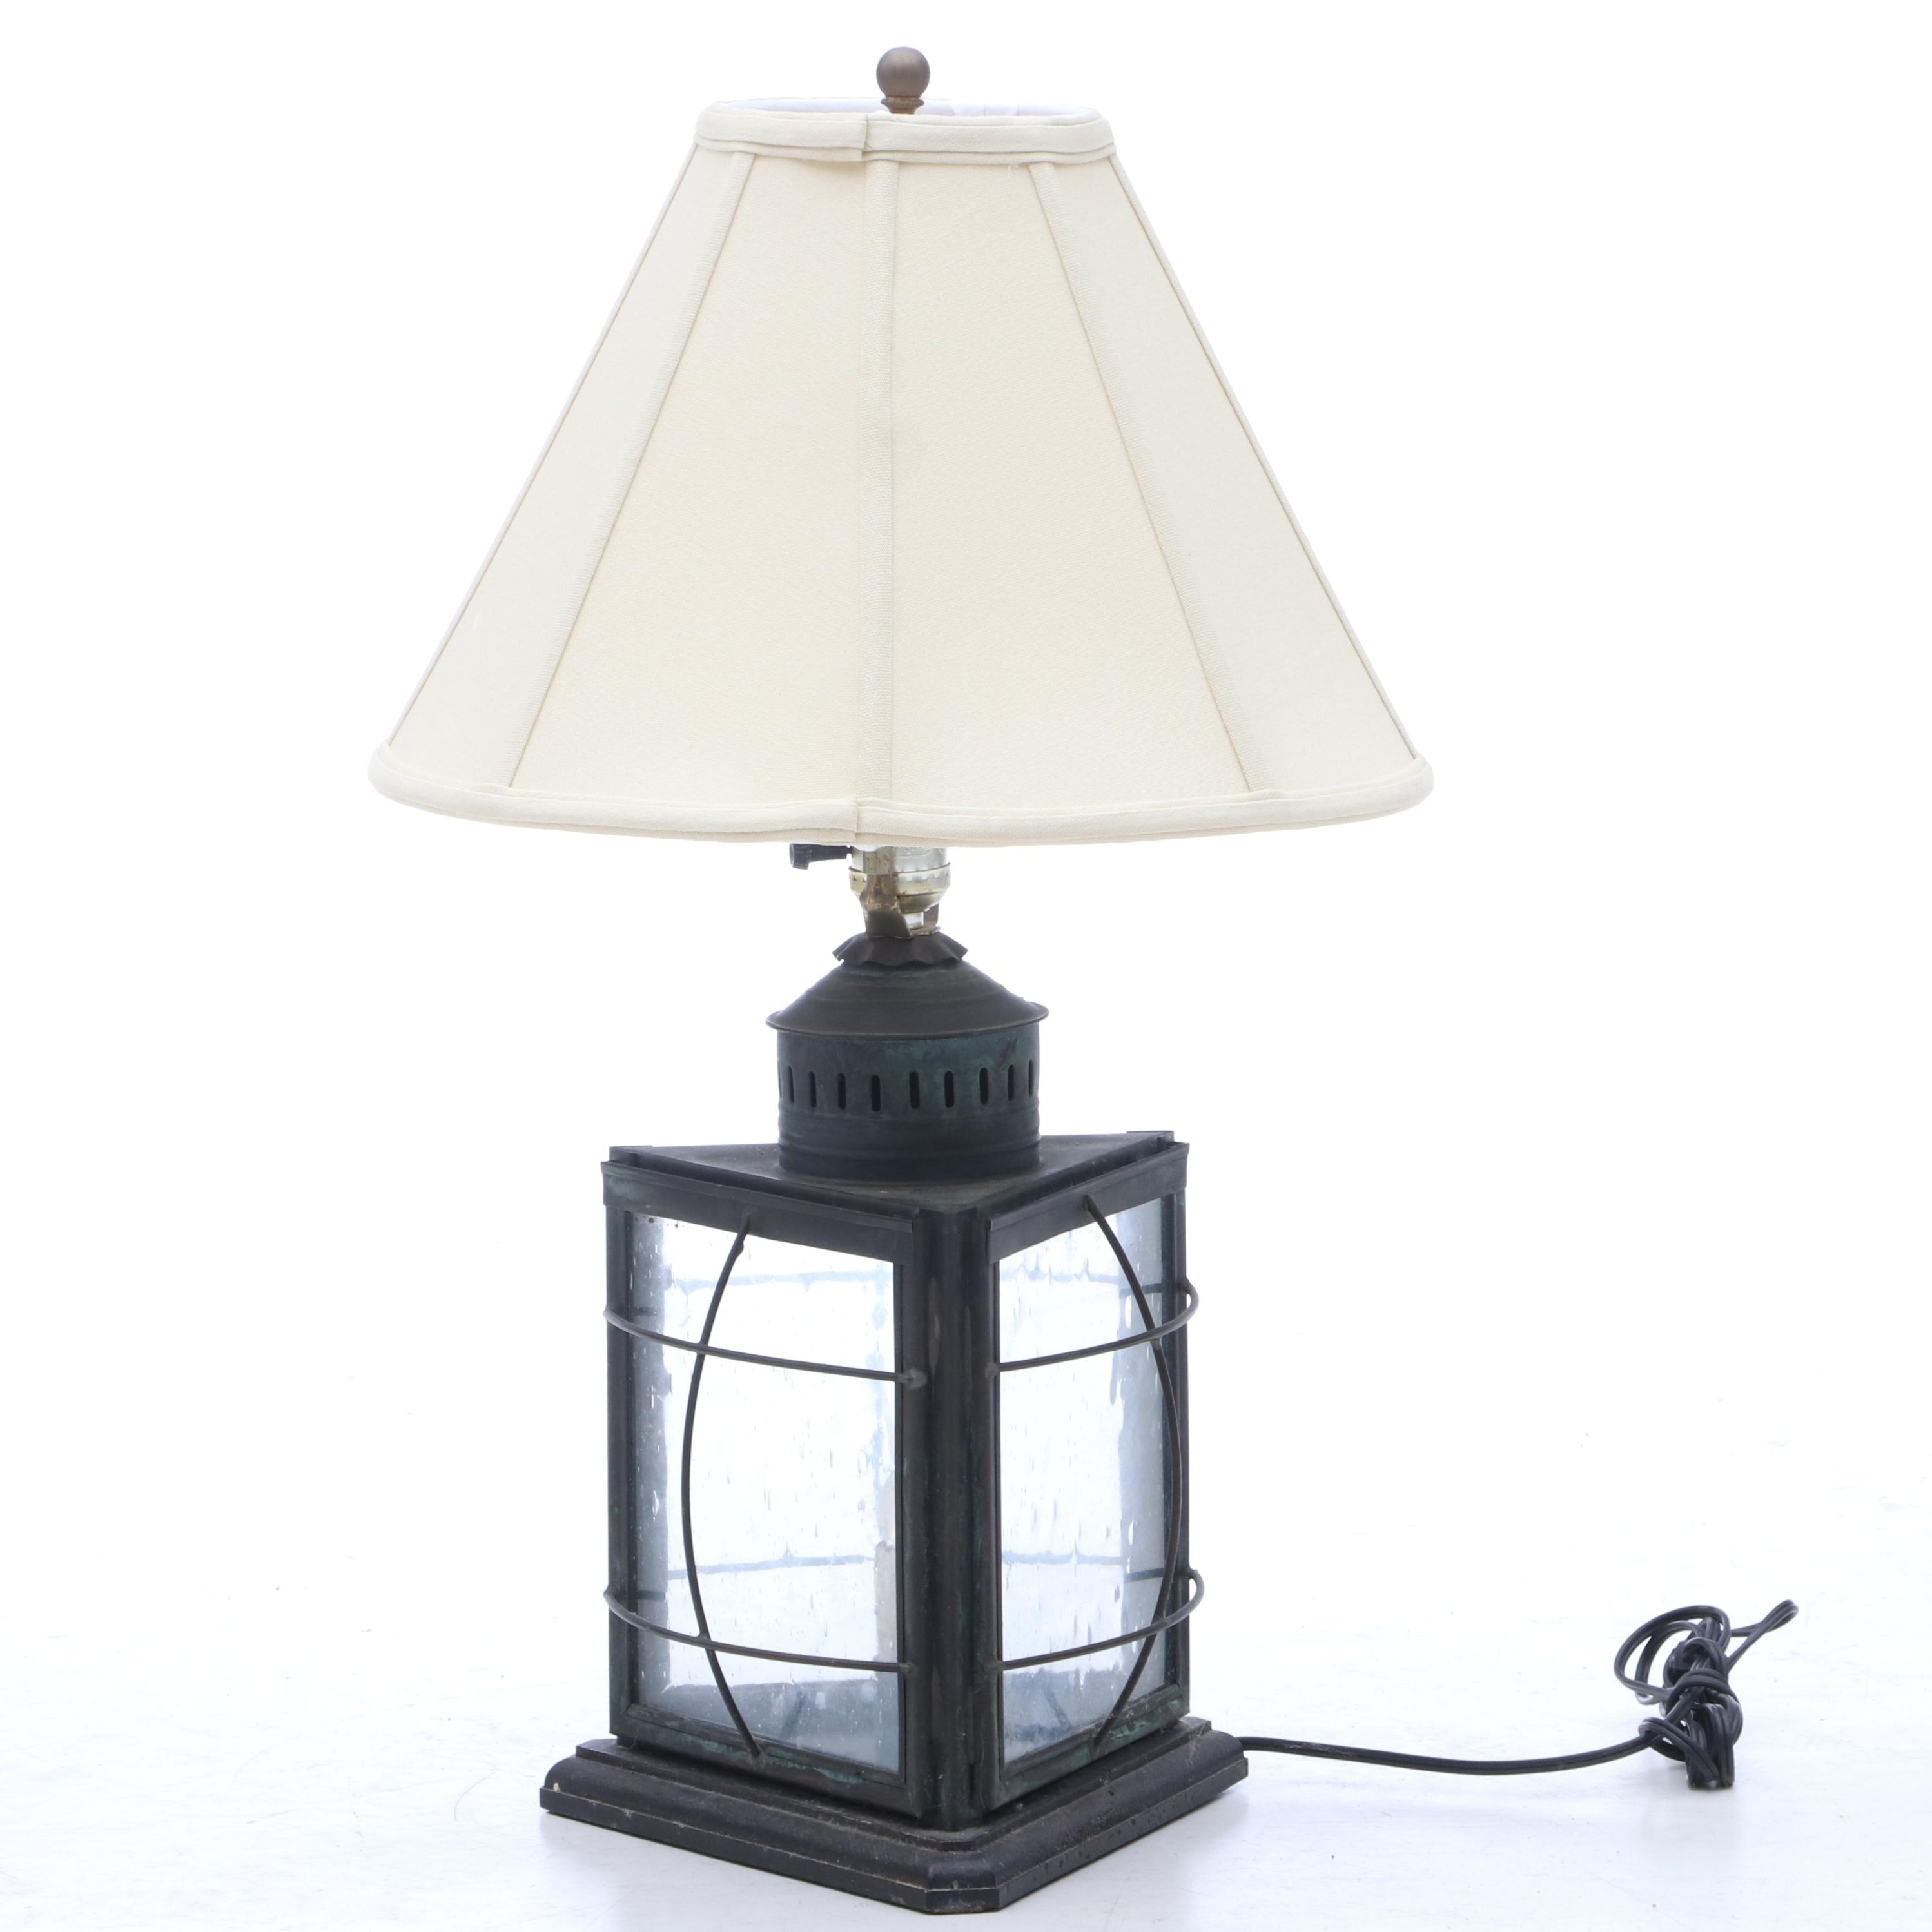 Converted Carriage Lantern Table Lamp